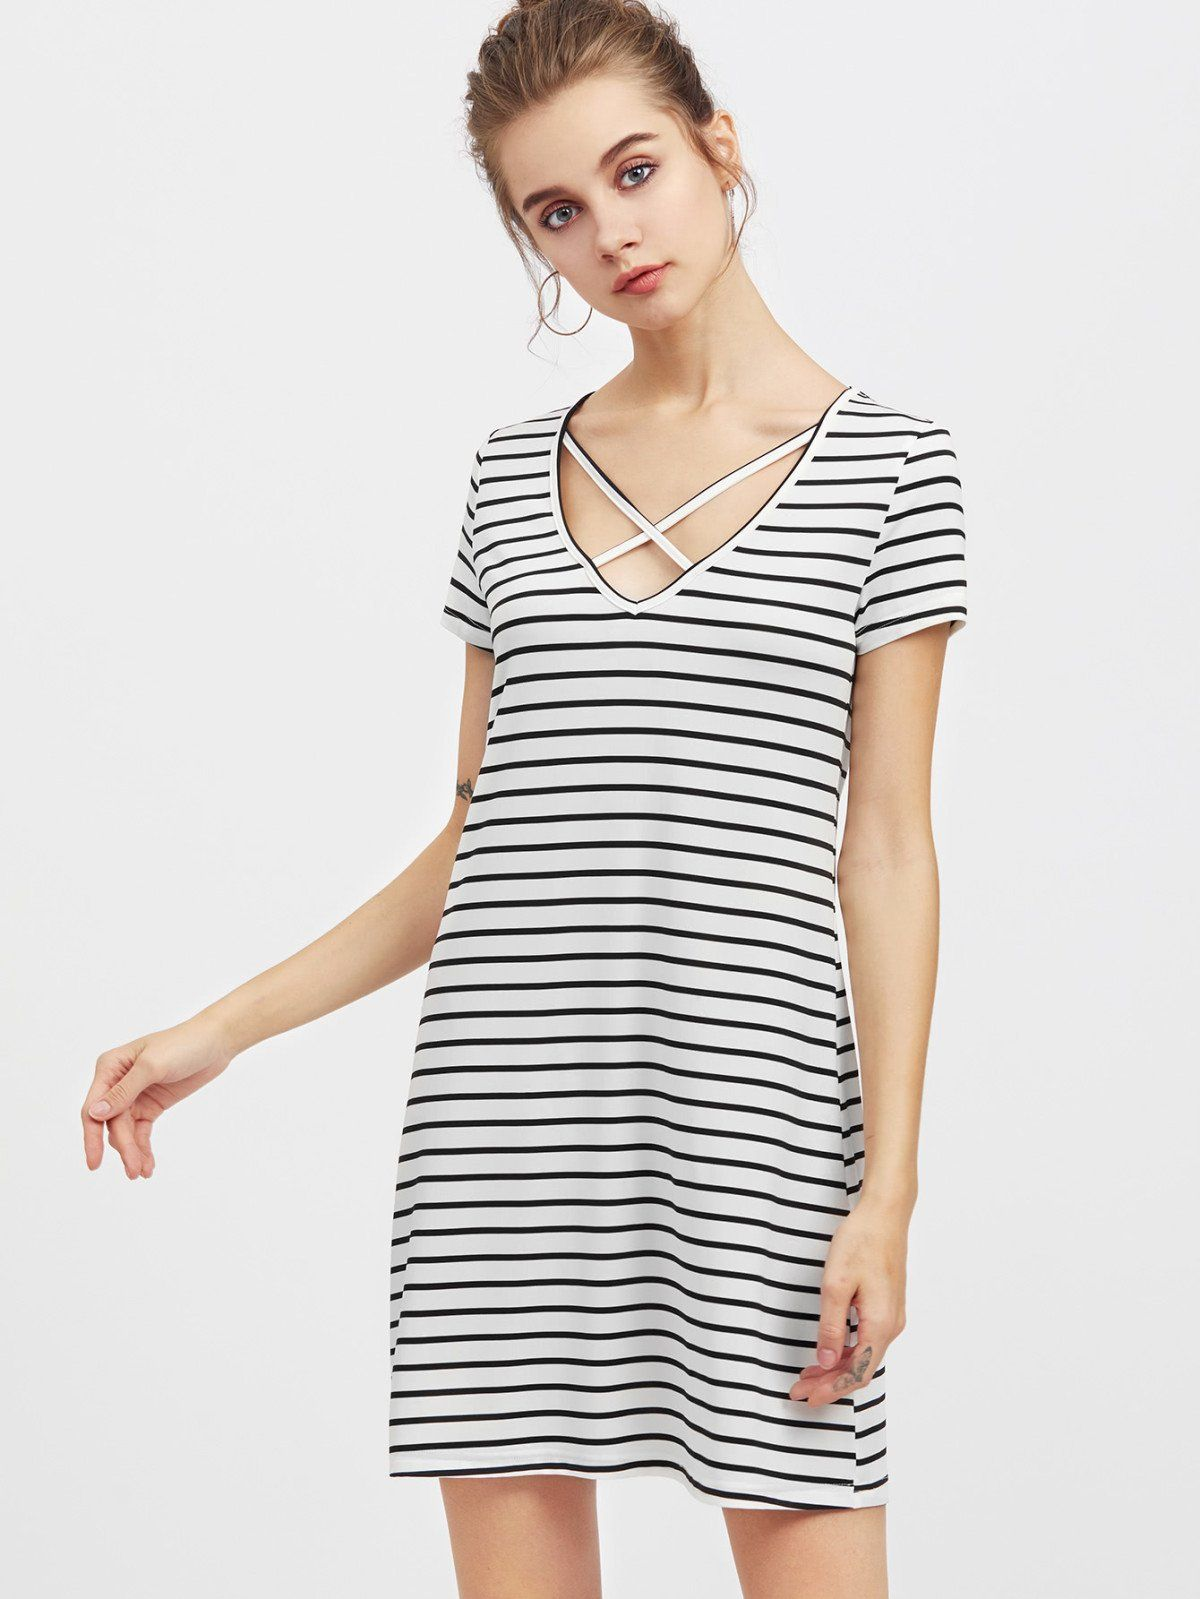 Crisscross v neck striped tee dress striped tee cross designs and